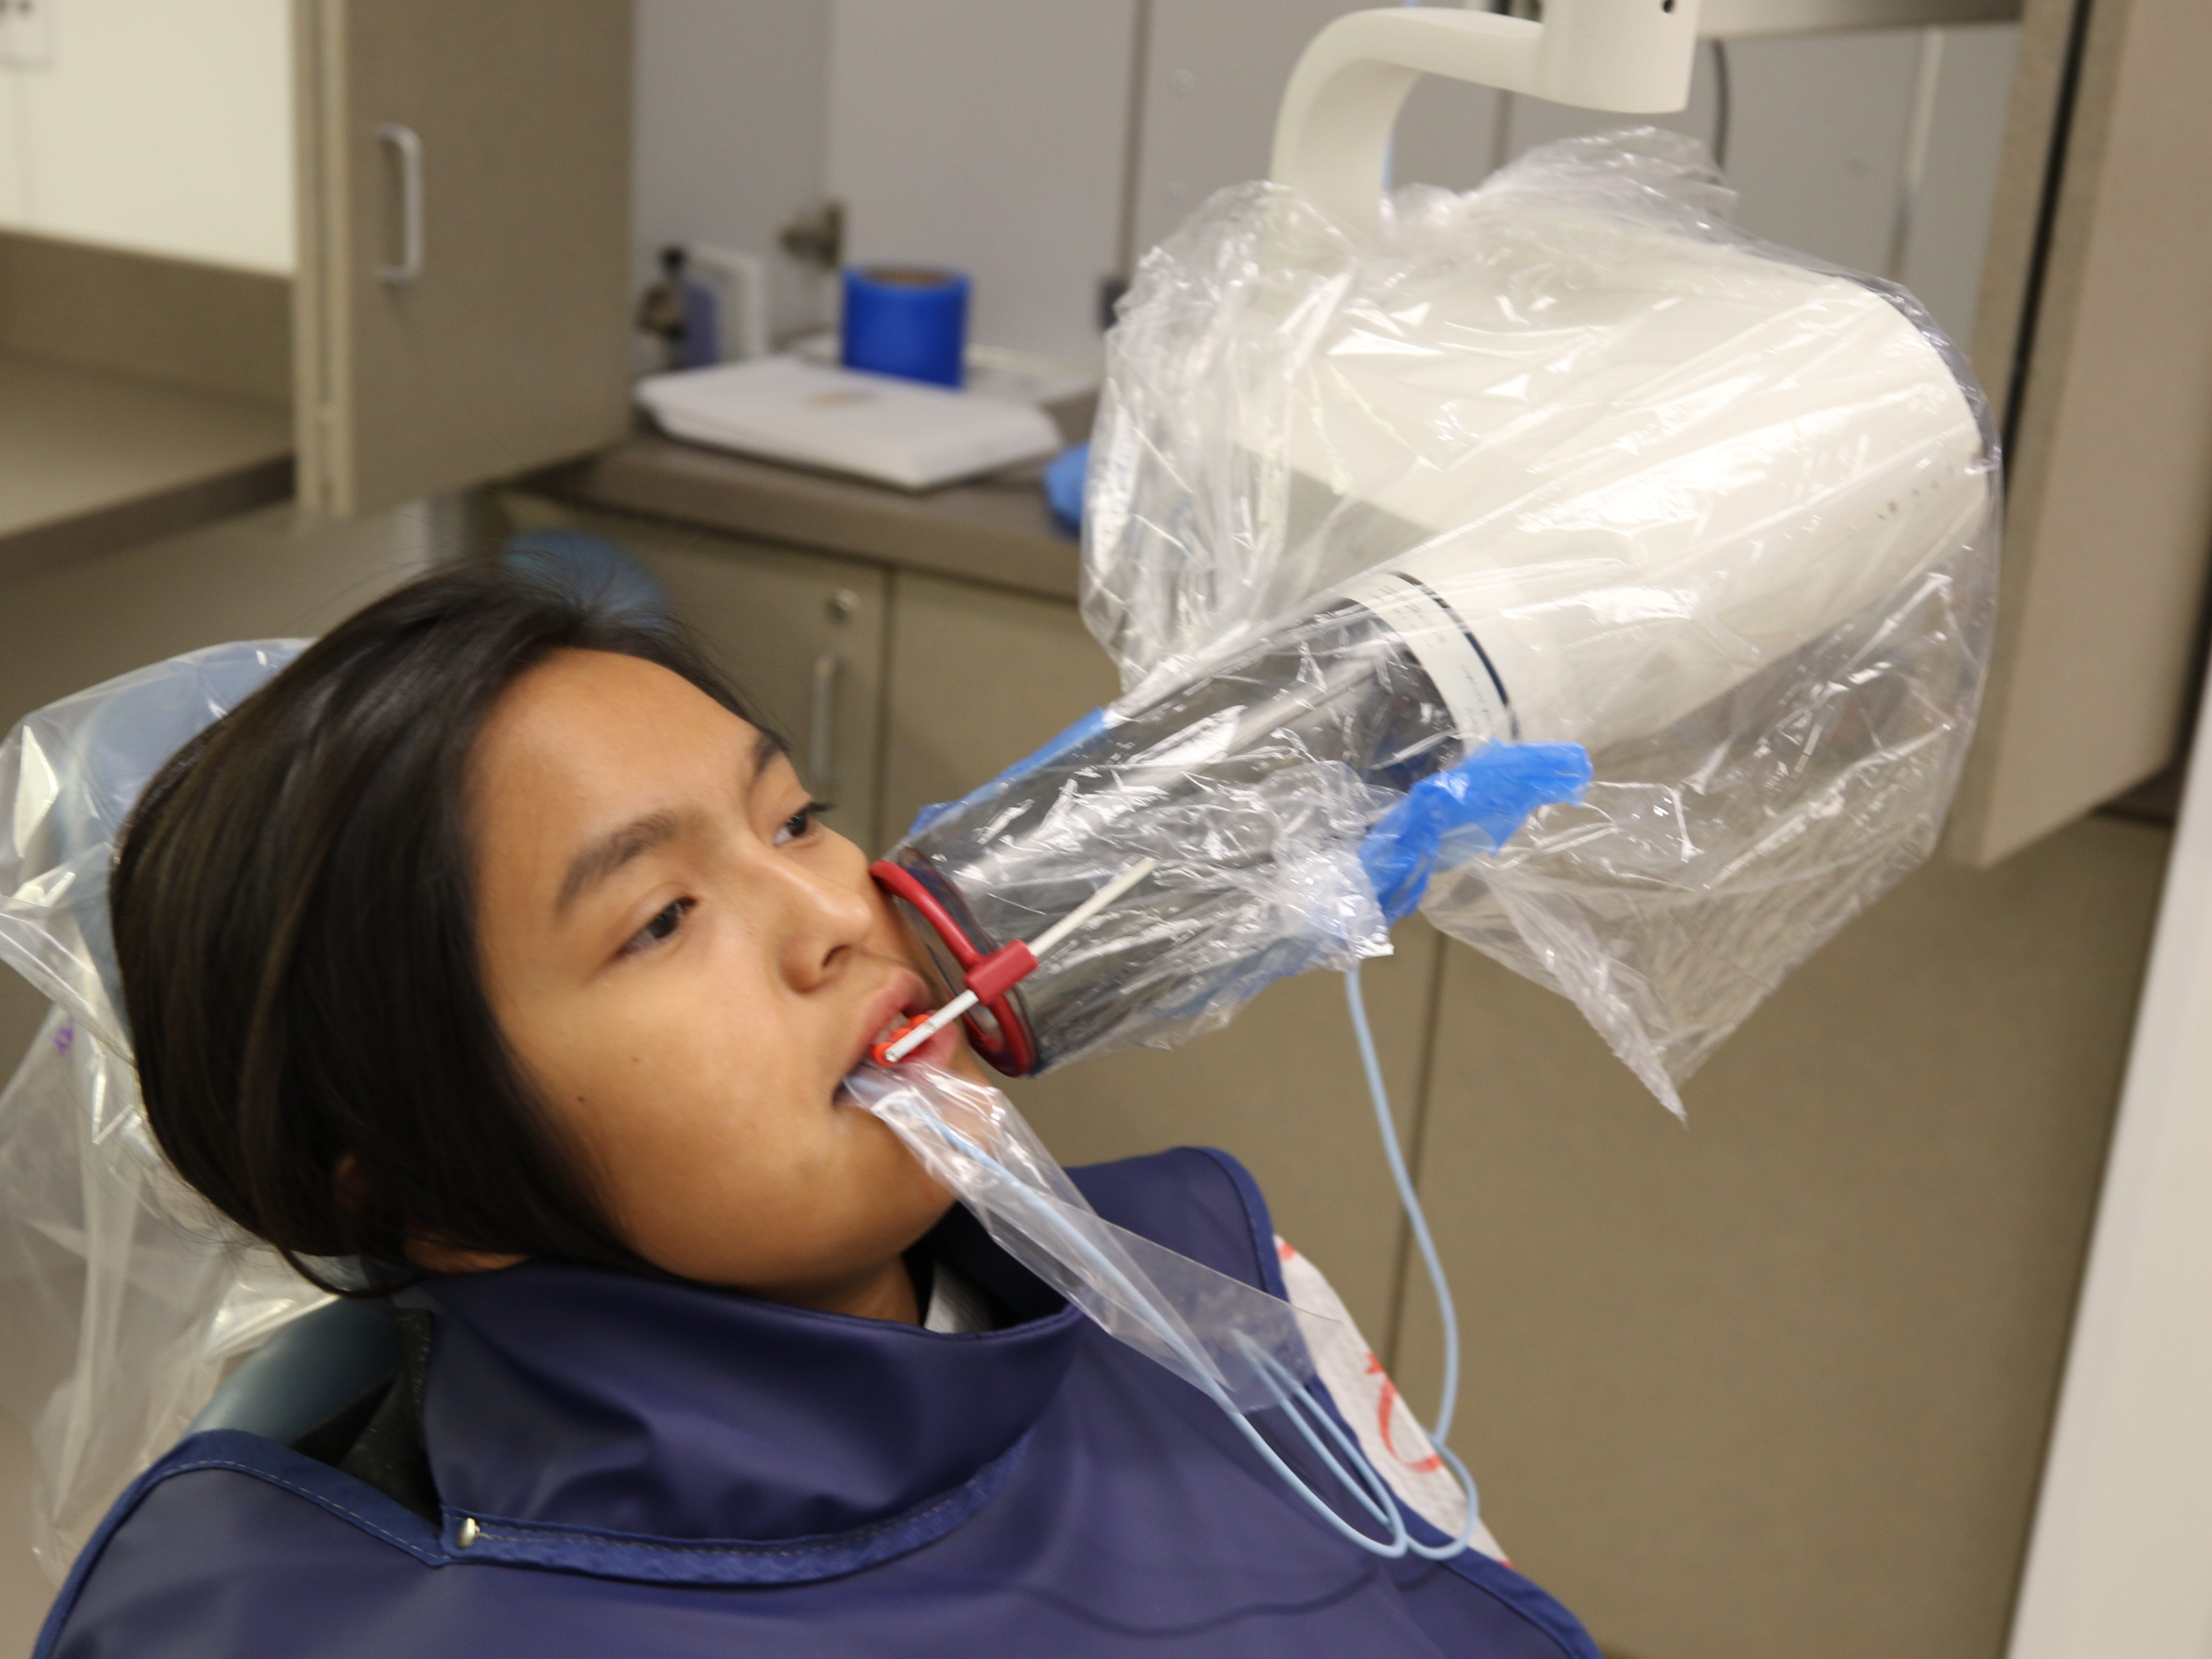 Twelve-year-old Fabianna Scott's prepares for an x-ray examination Friday morning at San Juan College's Give Kids a Smile Event. There were about 33 juveniles scheduled for the free dental clinic.